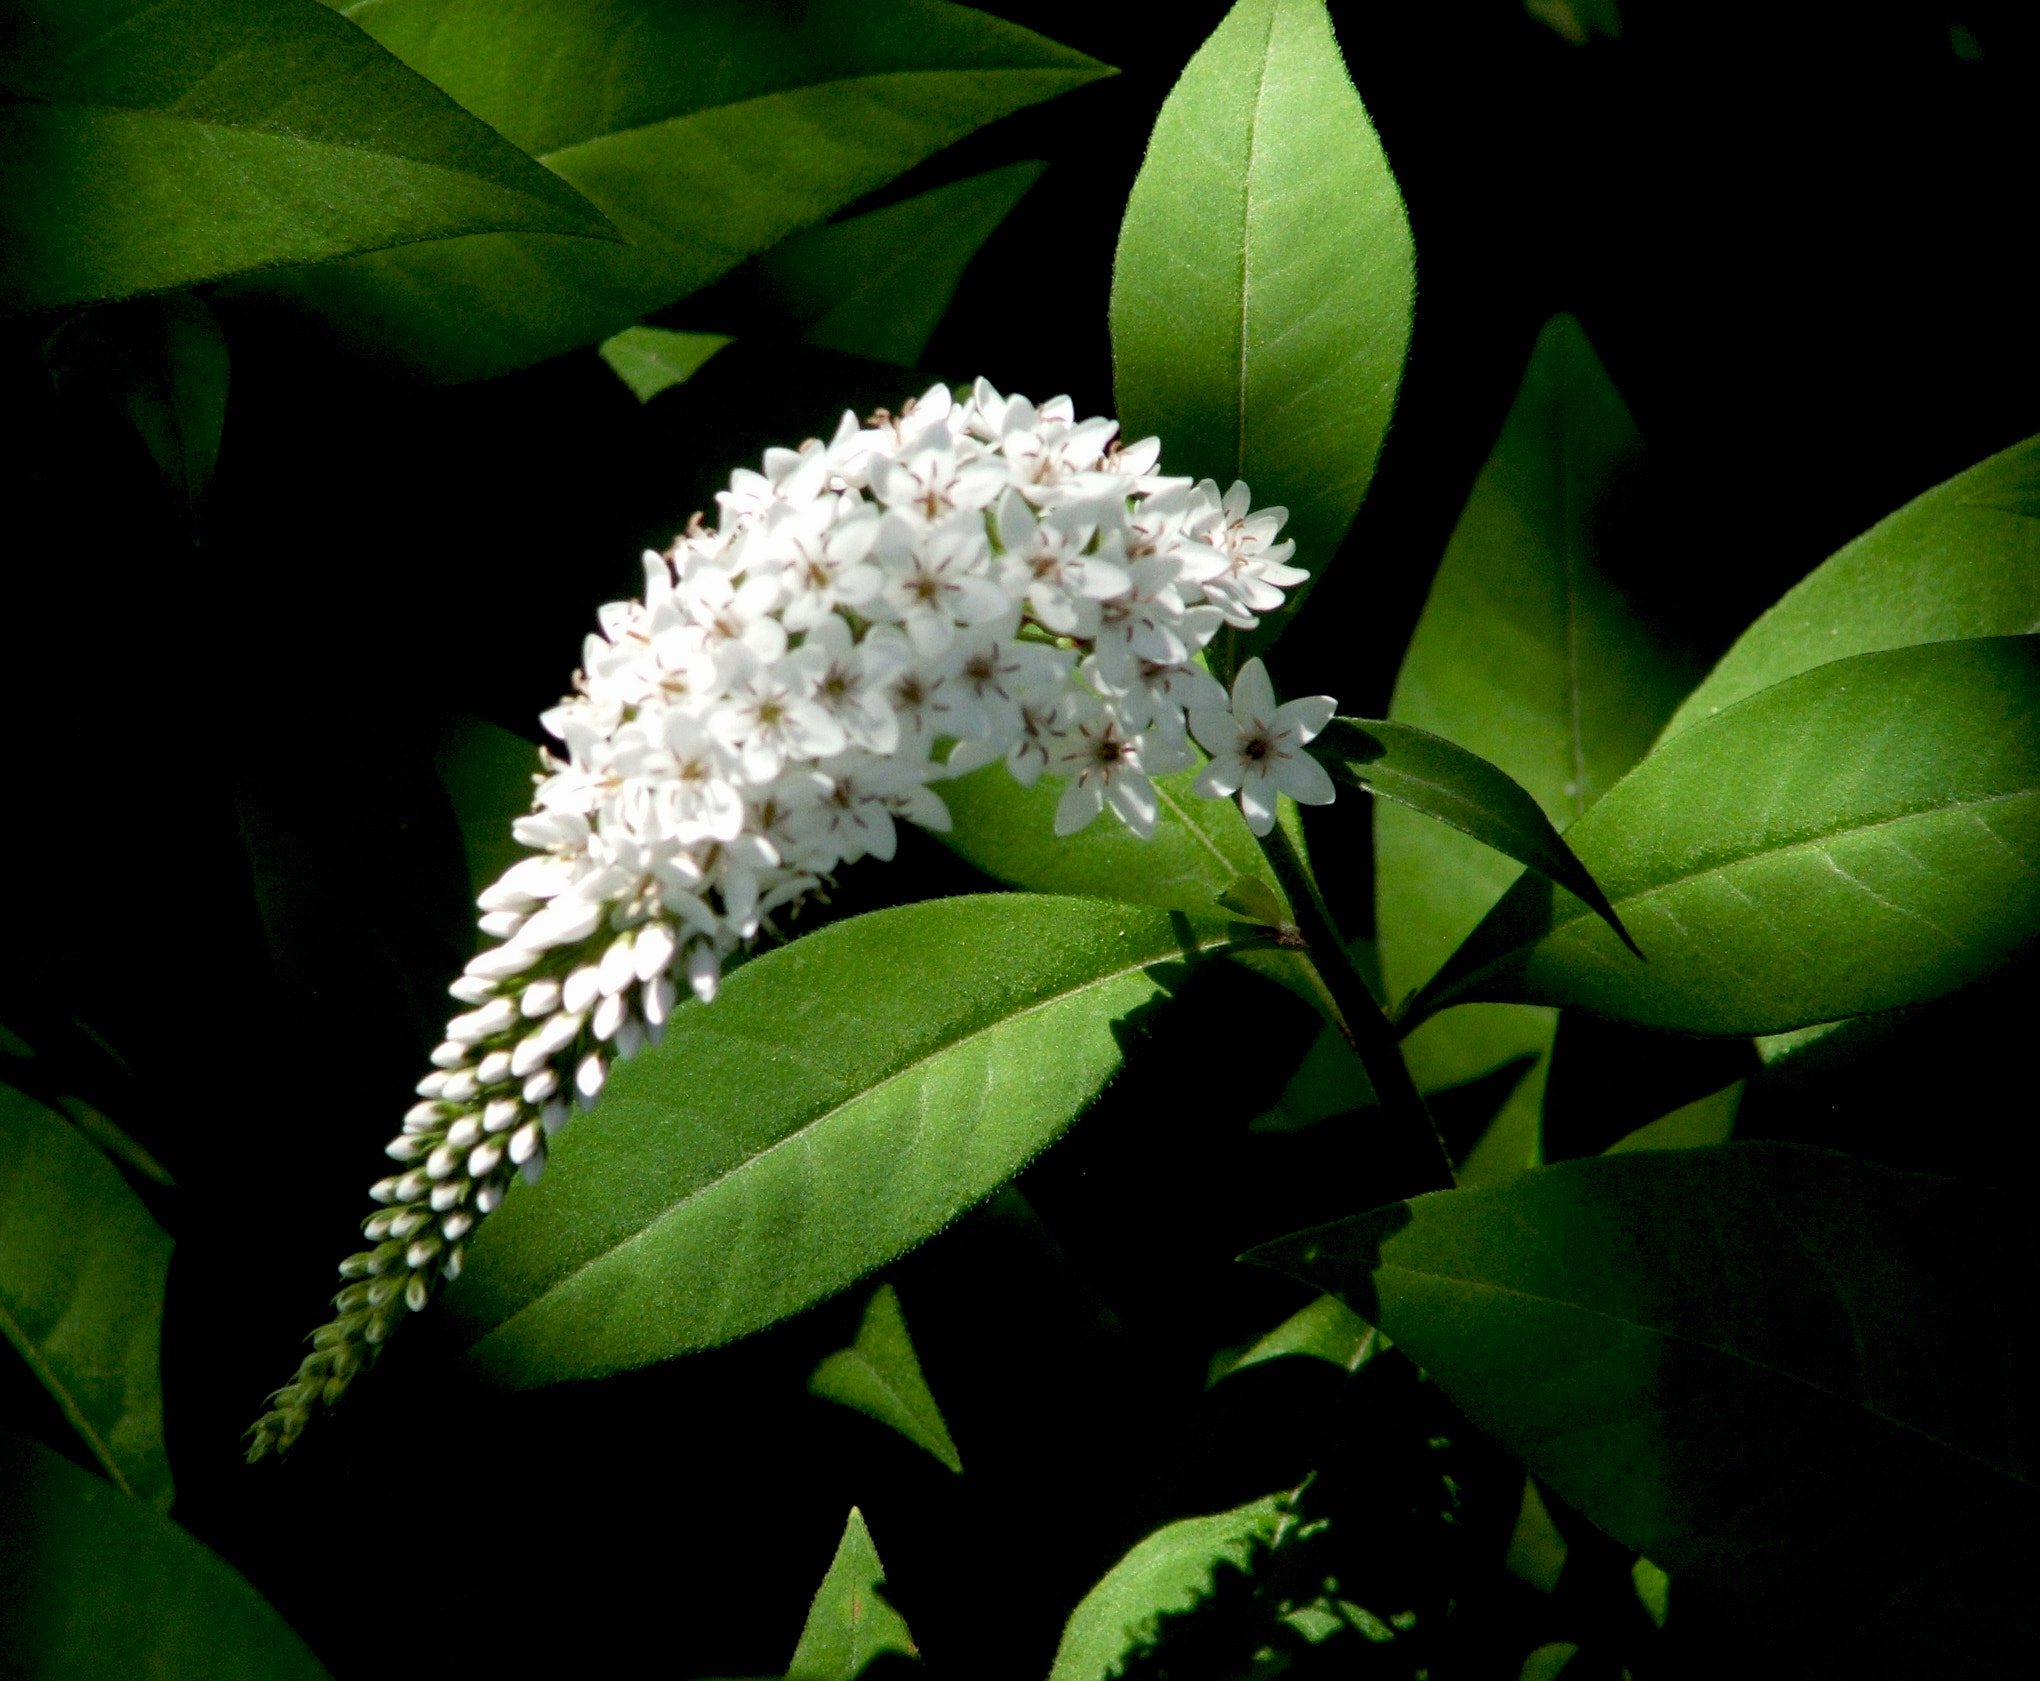 Photograph Gooseneck Loosestrife by Rebecca Chase on 500px